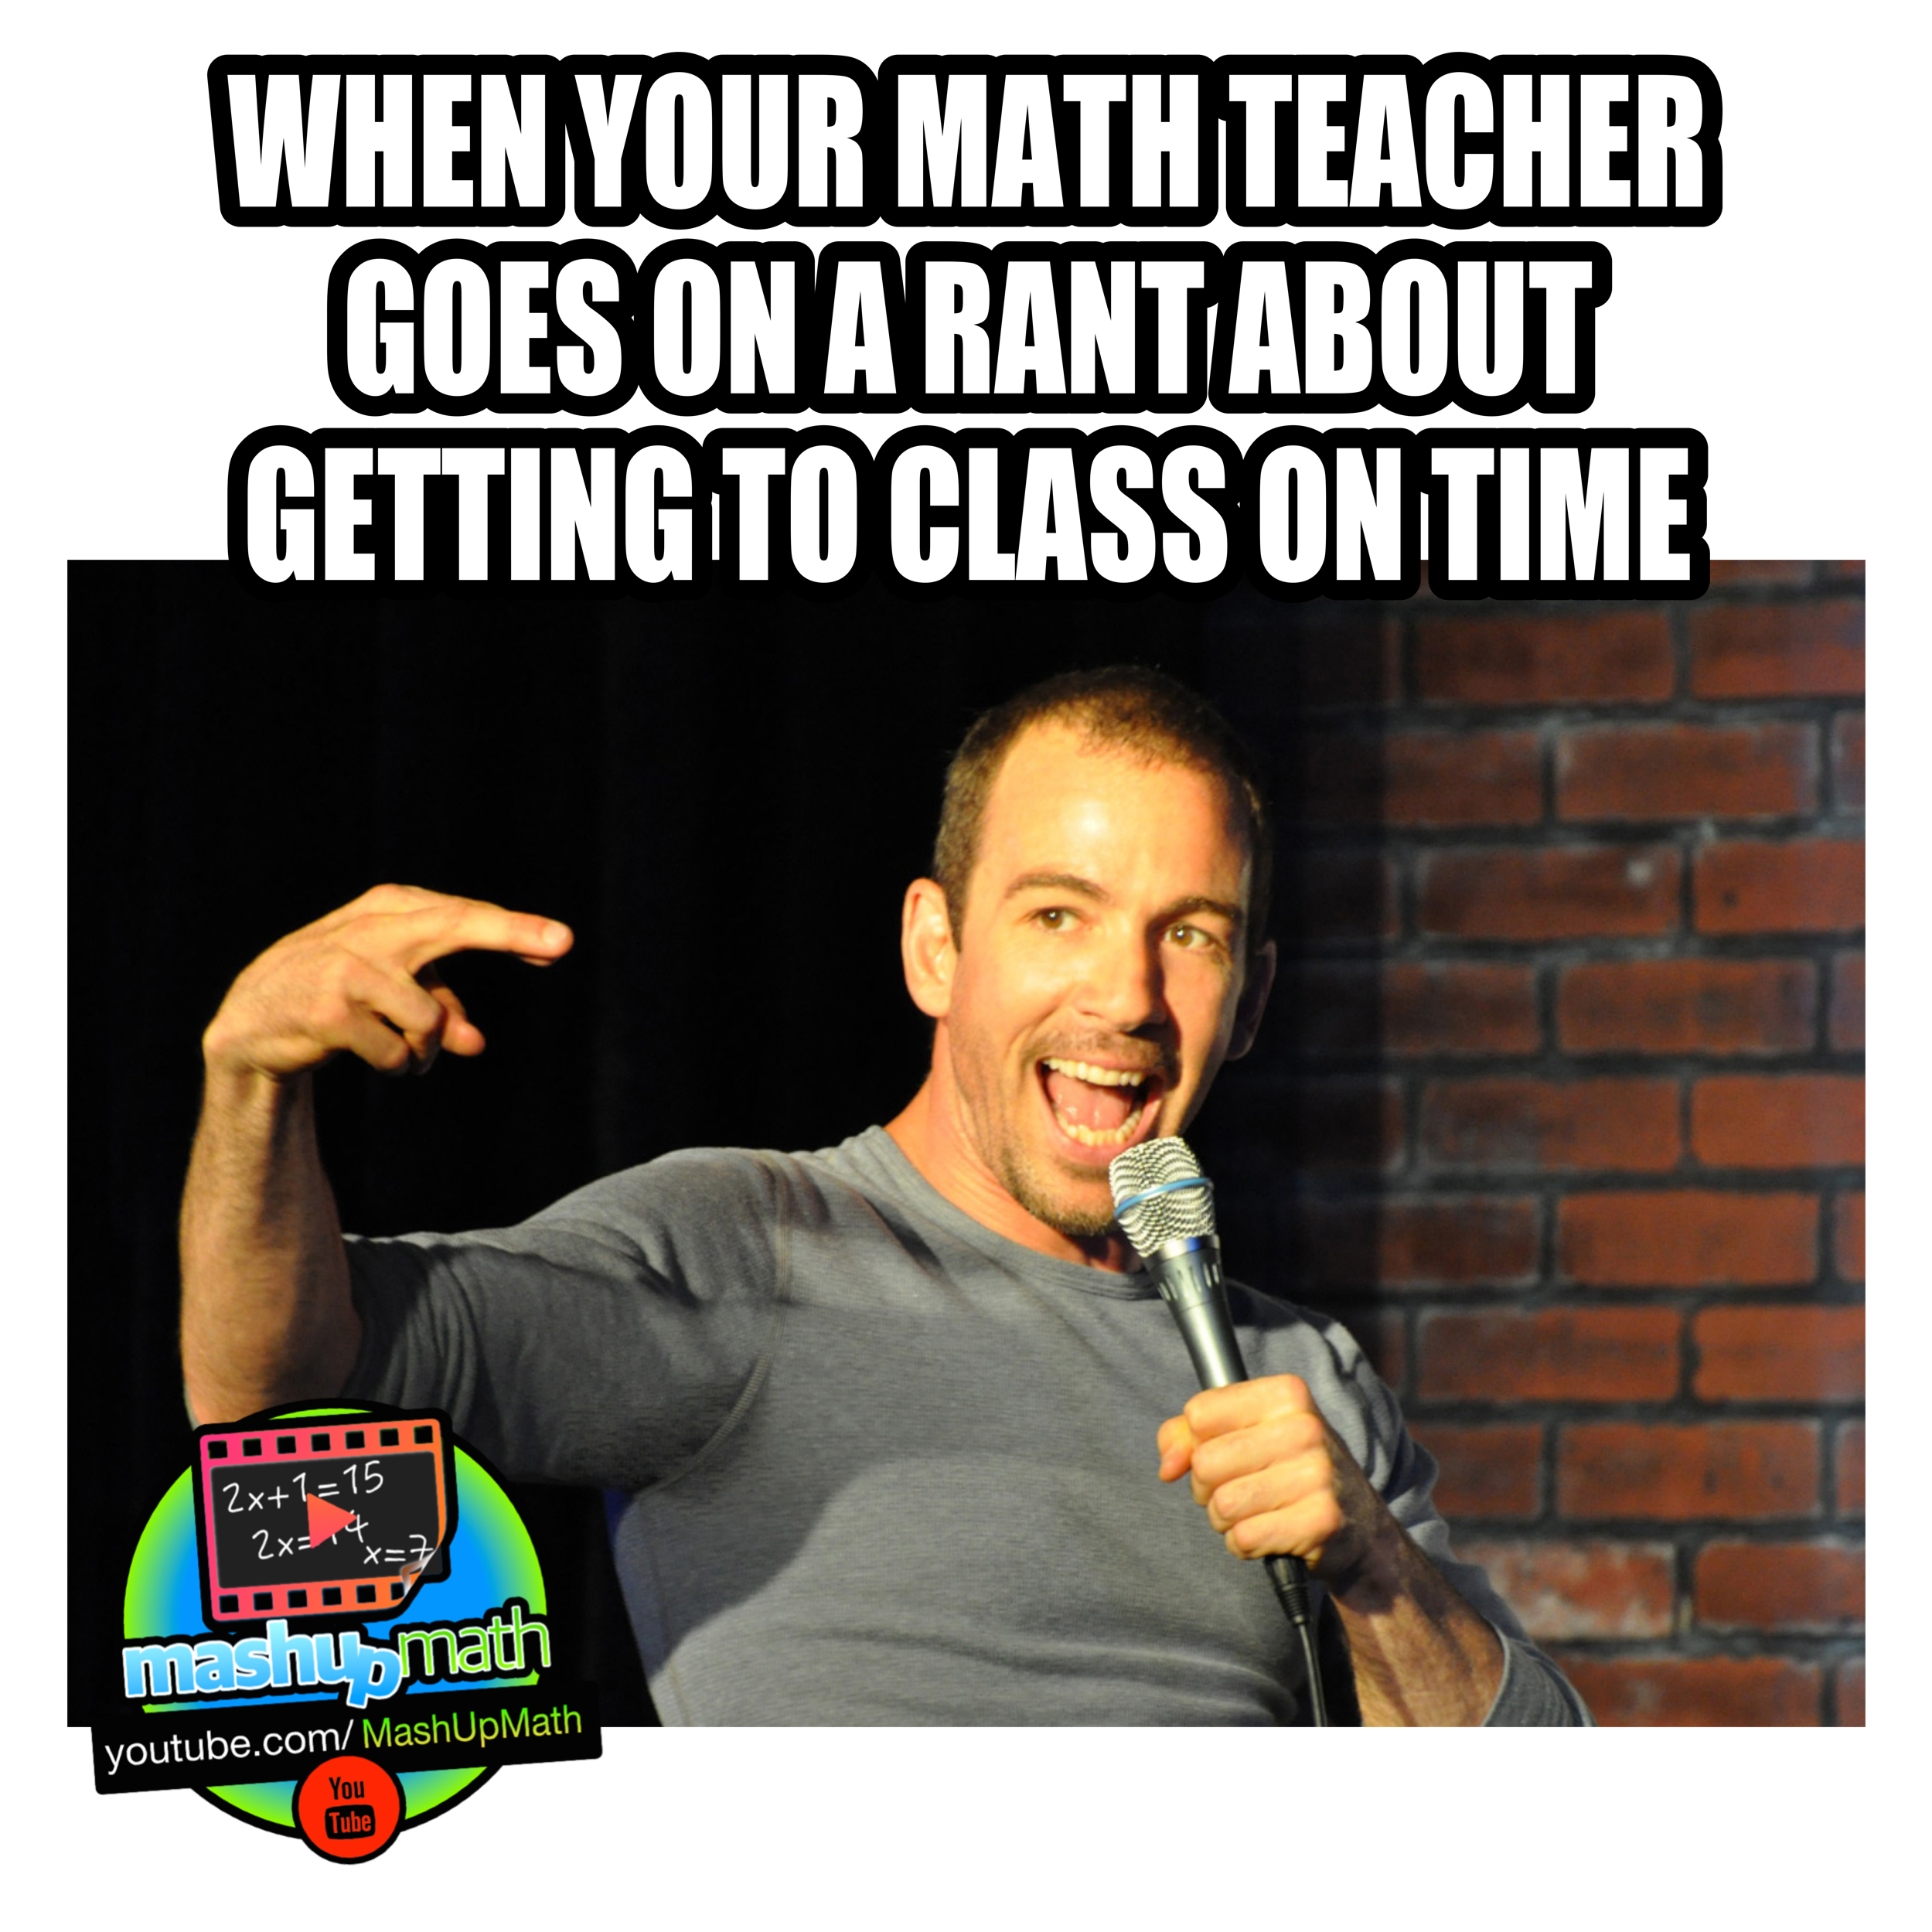 Who Knows That Teacher Who Is Always Going Off On Rants